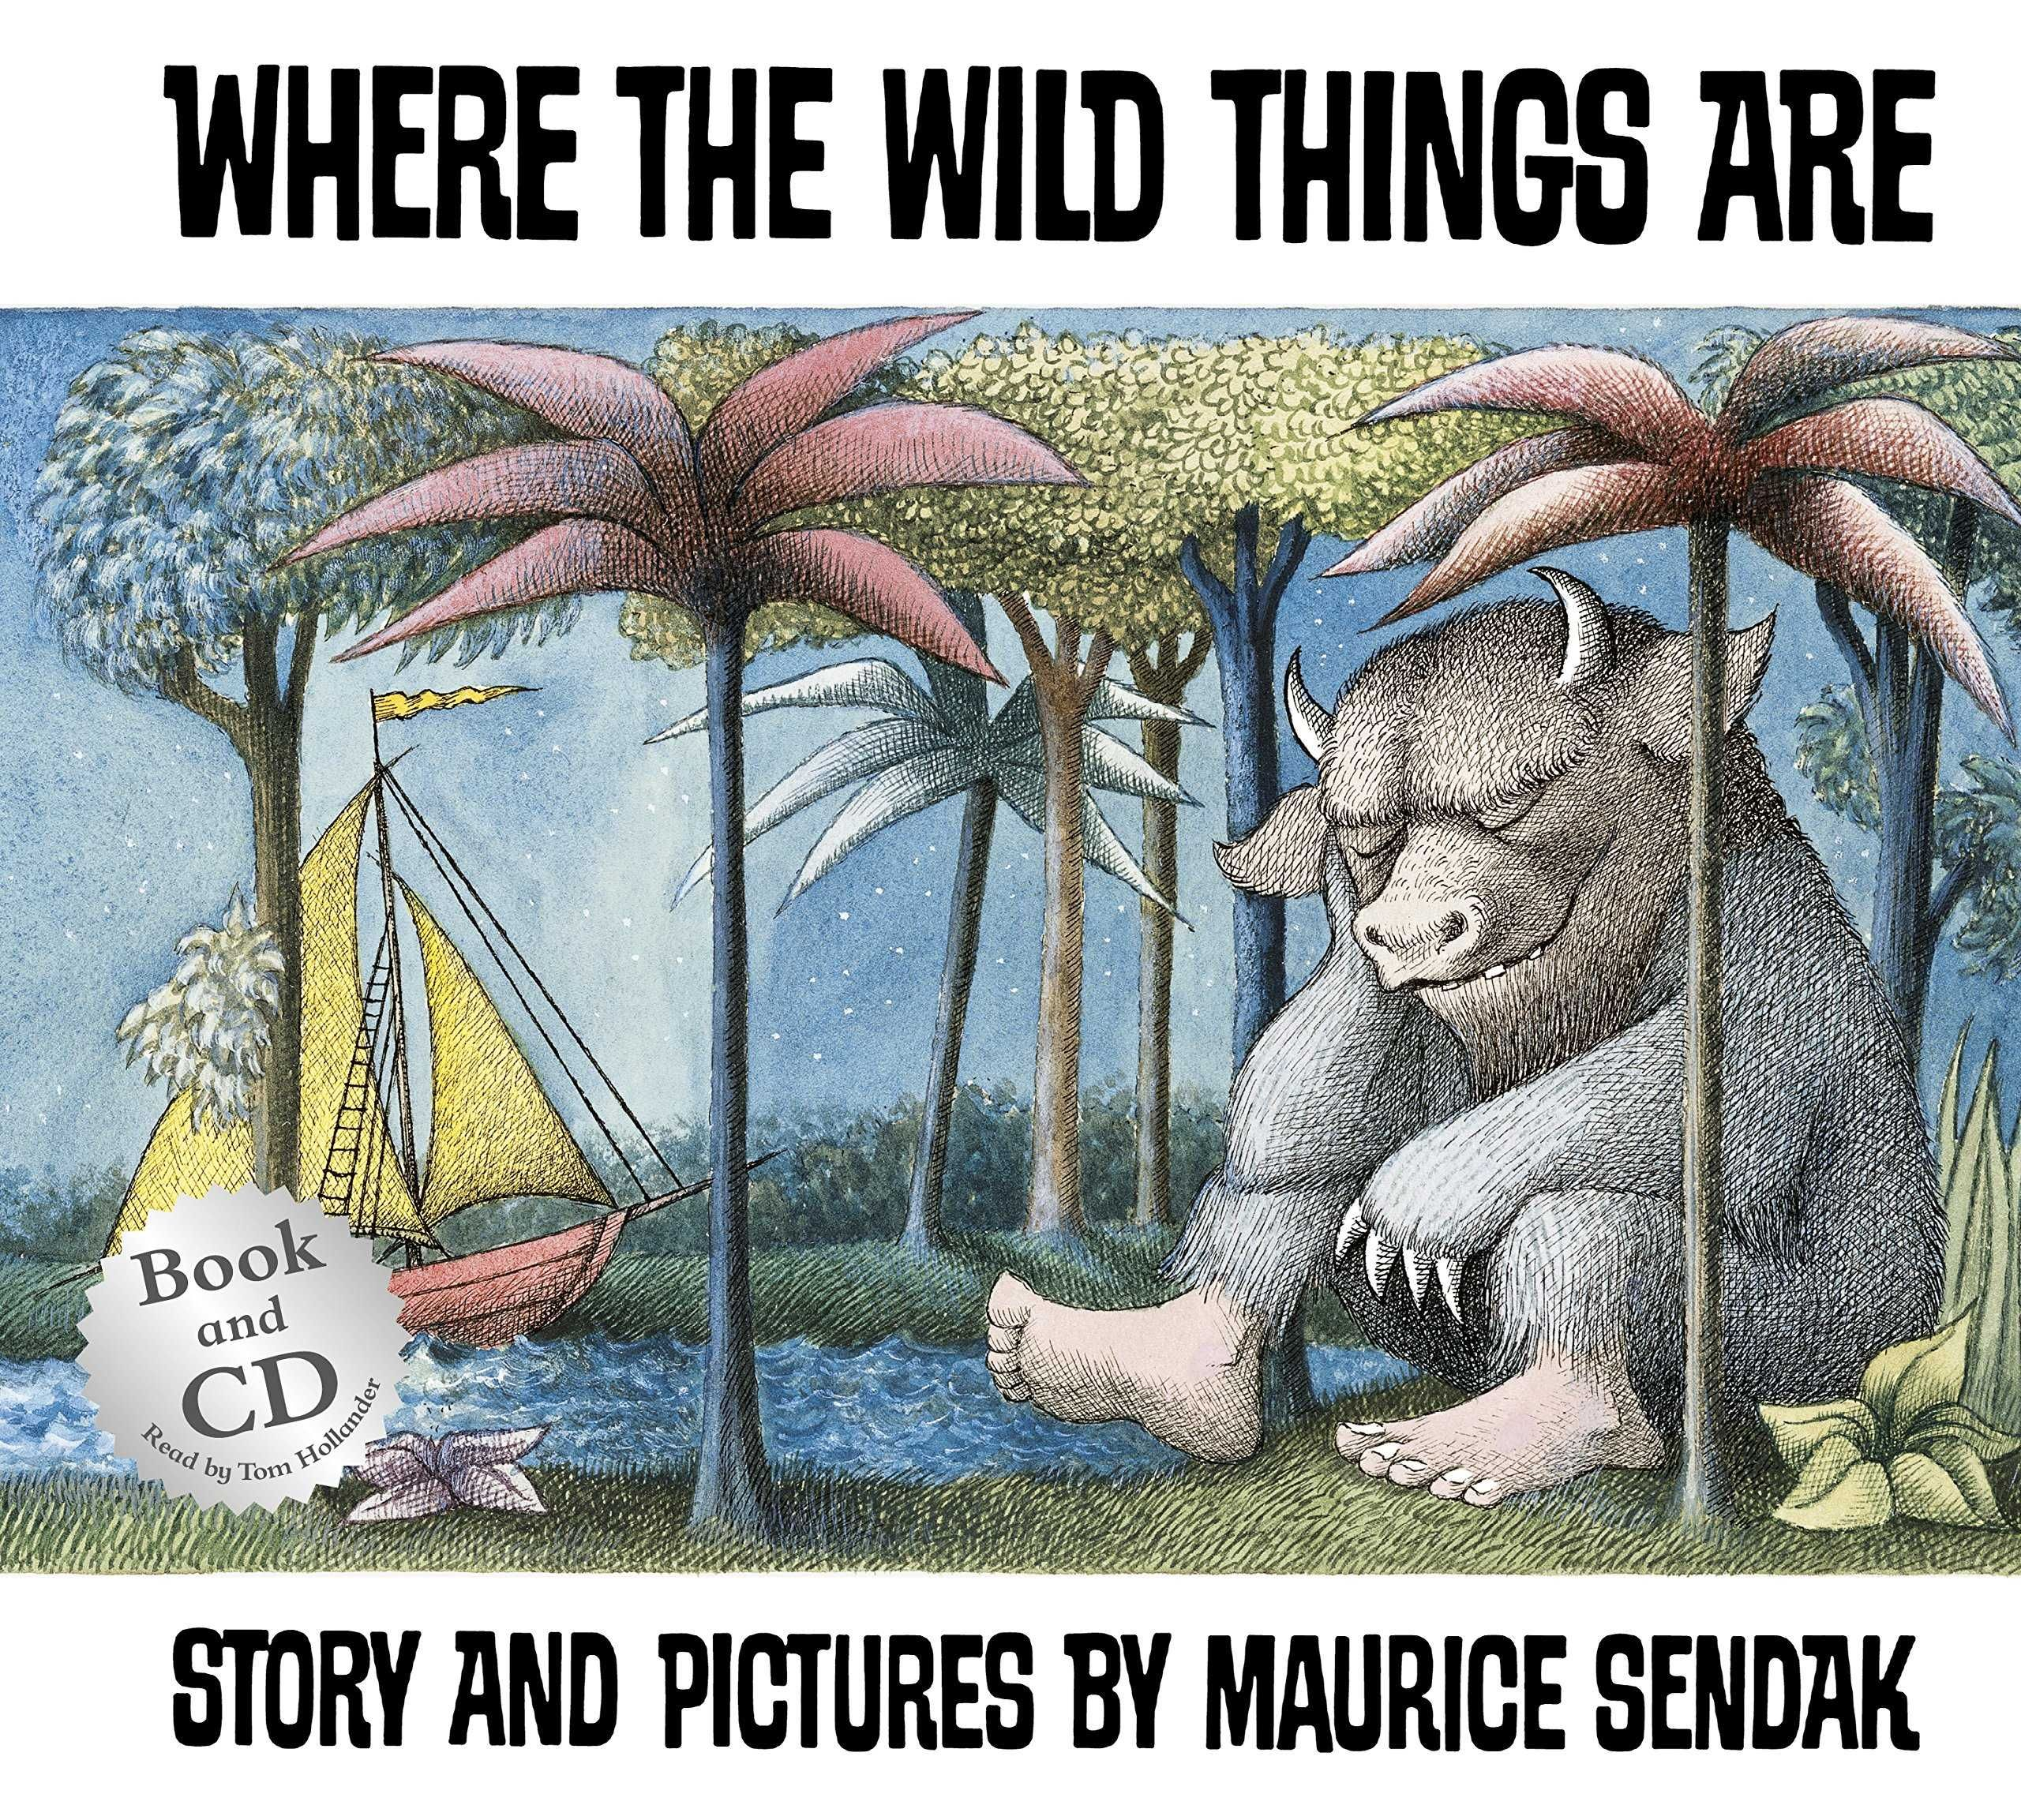 WHERE THE WILD THINGS ARE BOOK + CD